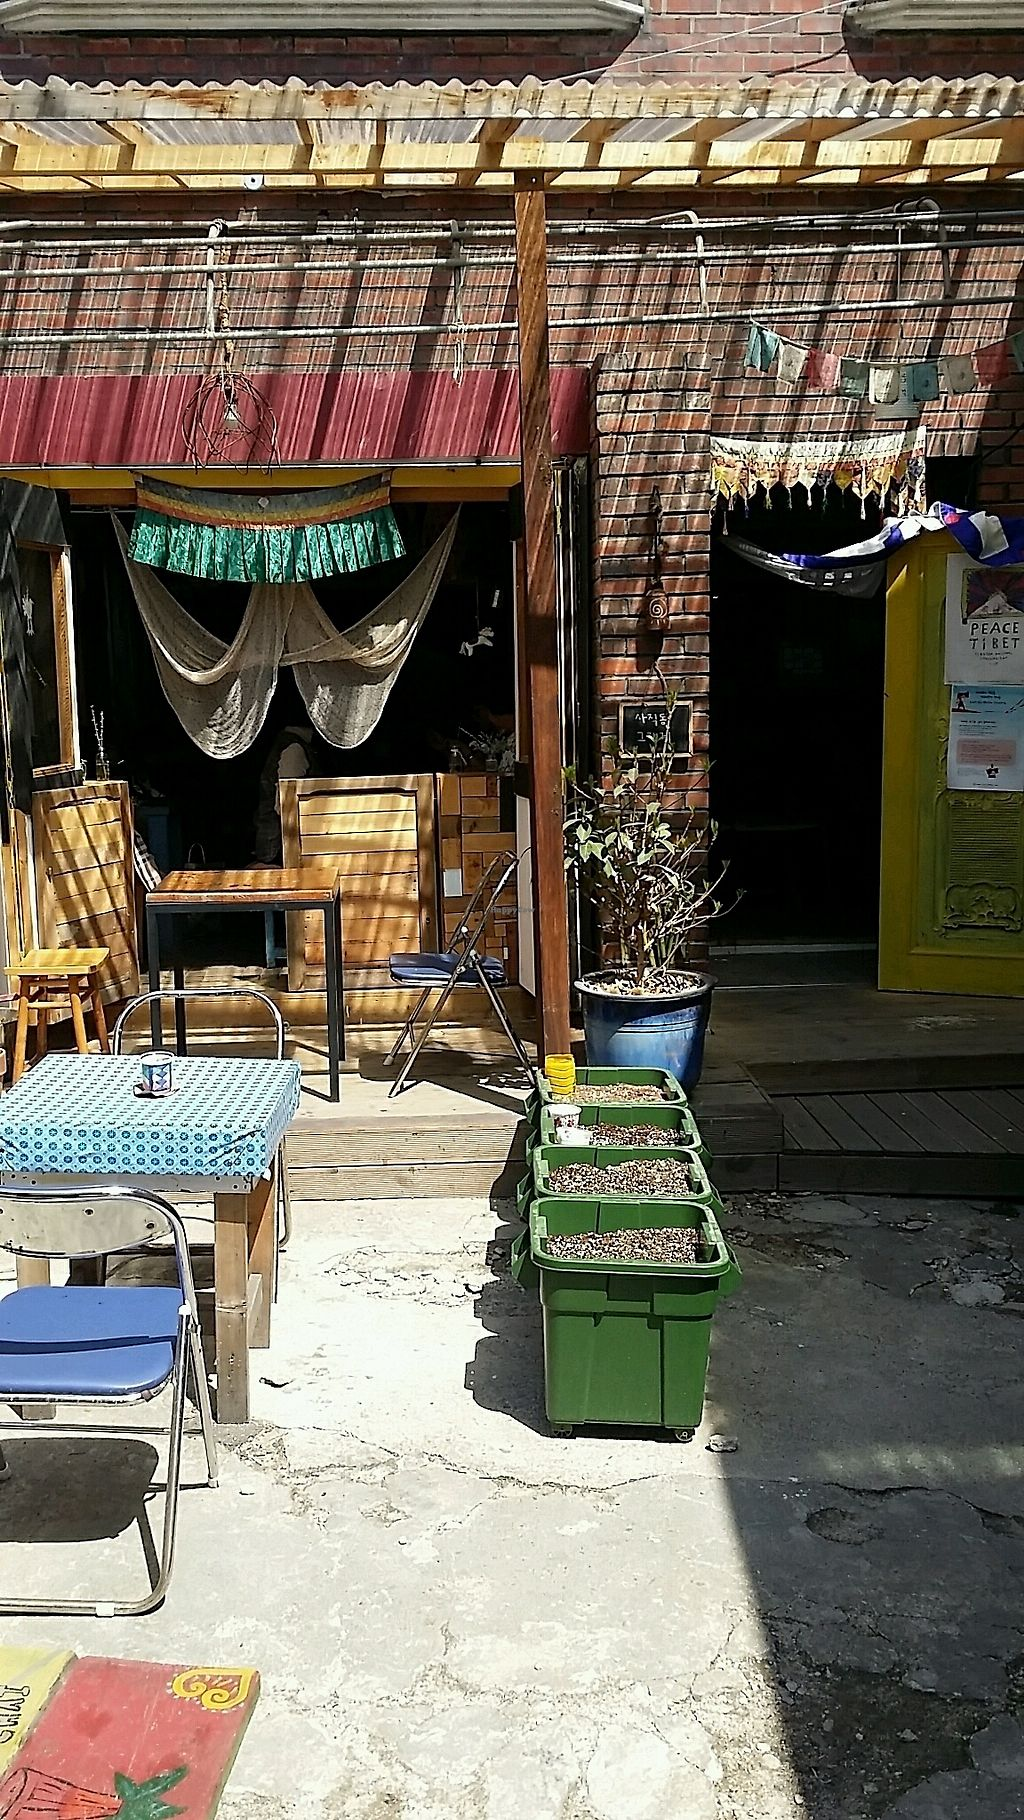 """Photo of The Store Sajik-dong - 사직동 그 가게  by <a href=""""/members/profile/JiriJerabek"""">JiriJerabek</a> <br/>yard <br/> April 13, 2018  - <a href='/contact/abuse/image/54509/385016'>Report</a>"""